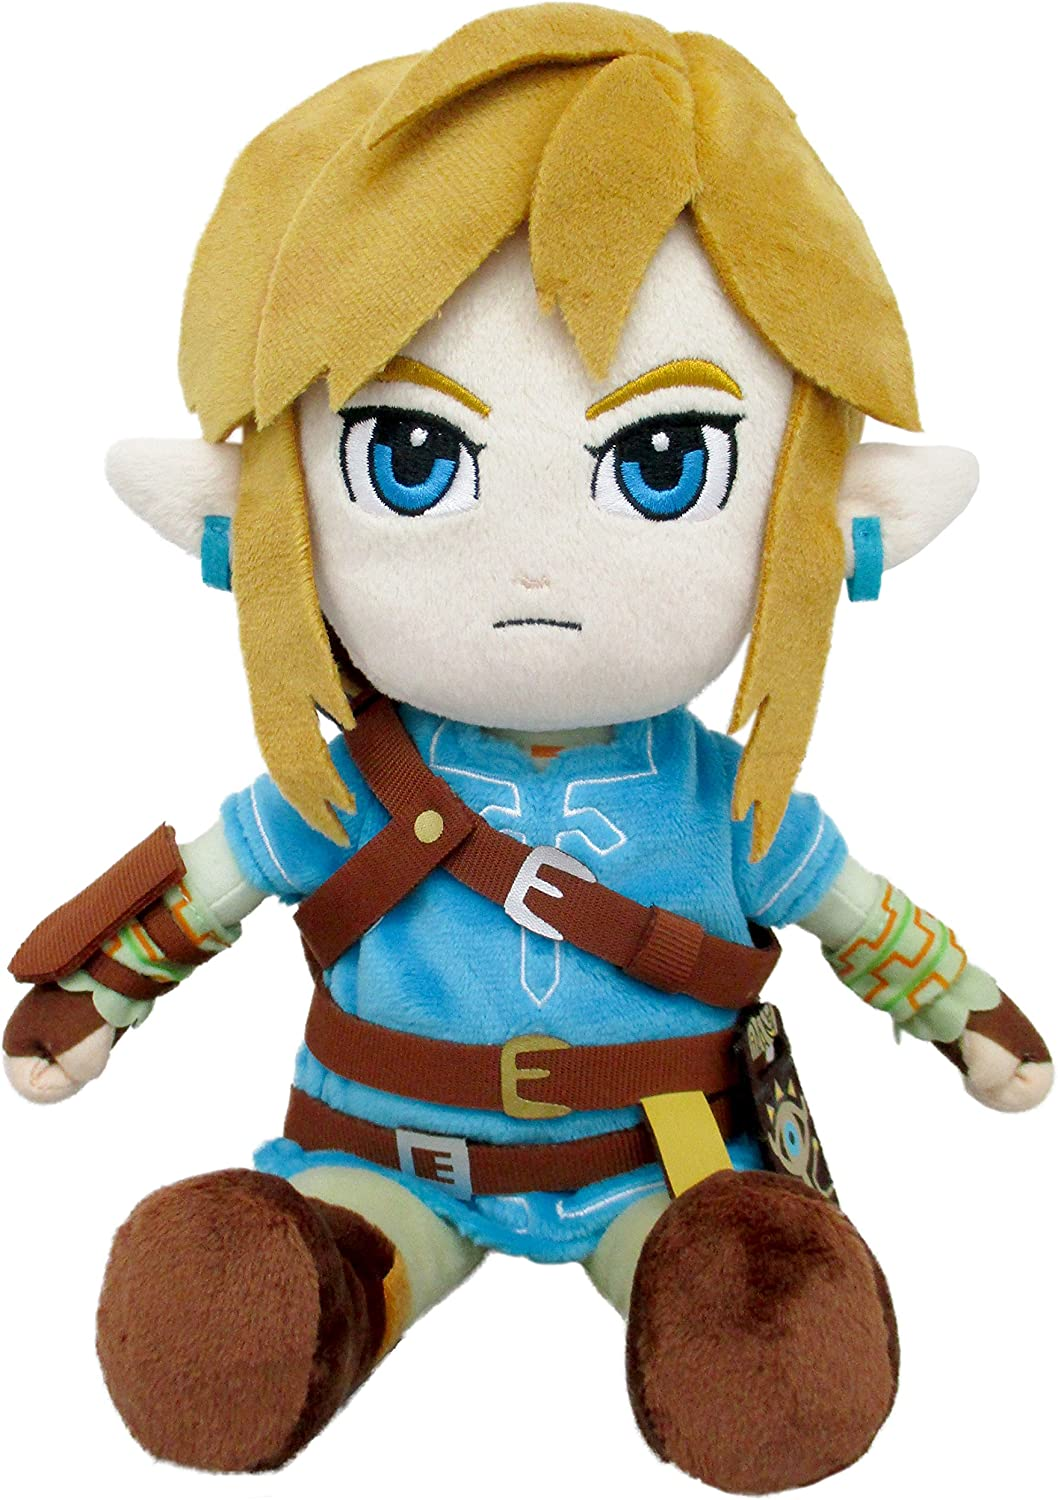 Sanei The Legend of Zelda Breath of The Wild ZP01 BOTW Link (S) Peluche Plush 20cm [Japan Import]: Amazon.es: Juguetes y juegos